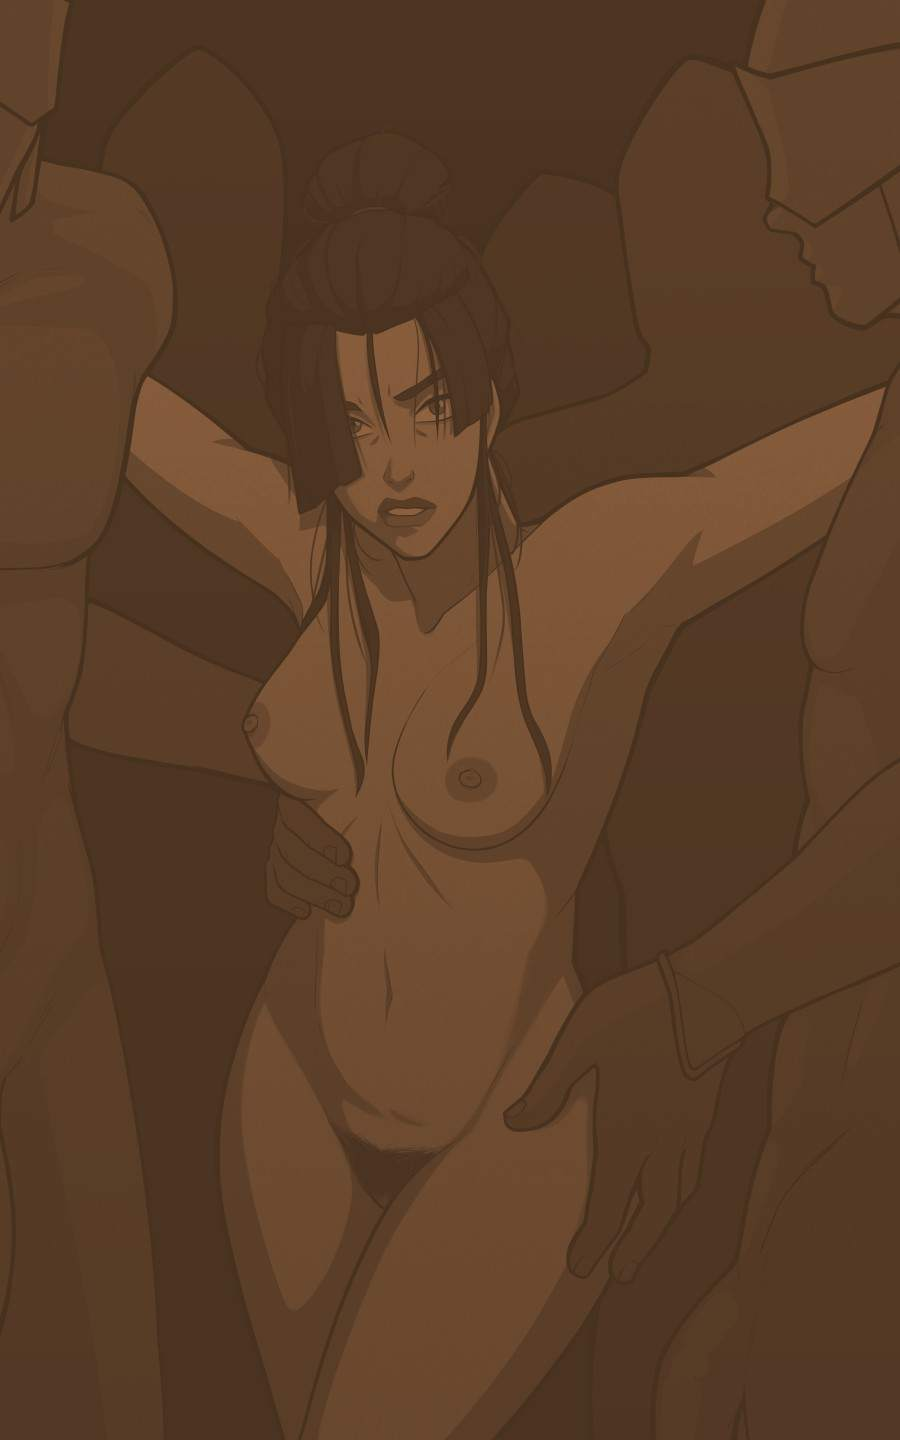 Azula The Boiling Rock MrPotatoParty Hentai PT BR Pag. 02 - hentai, comics-hq